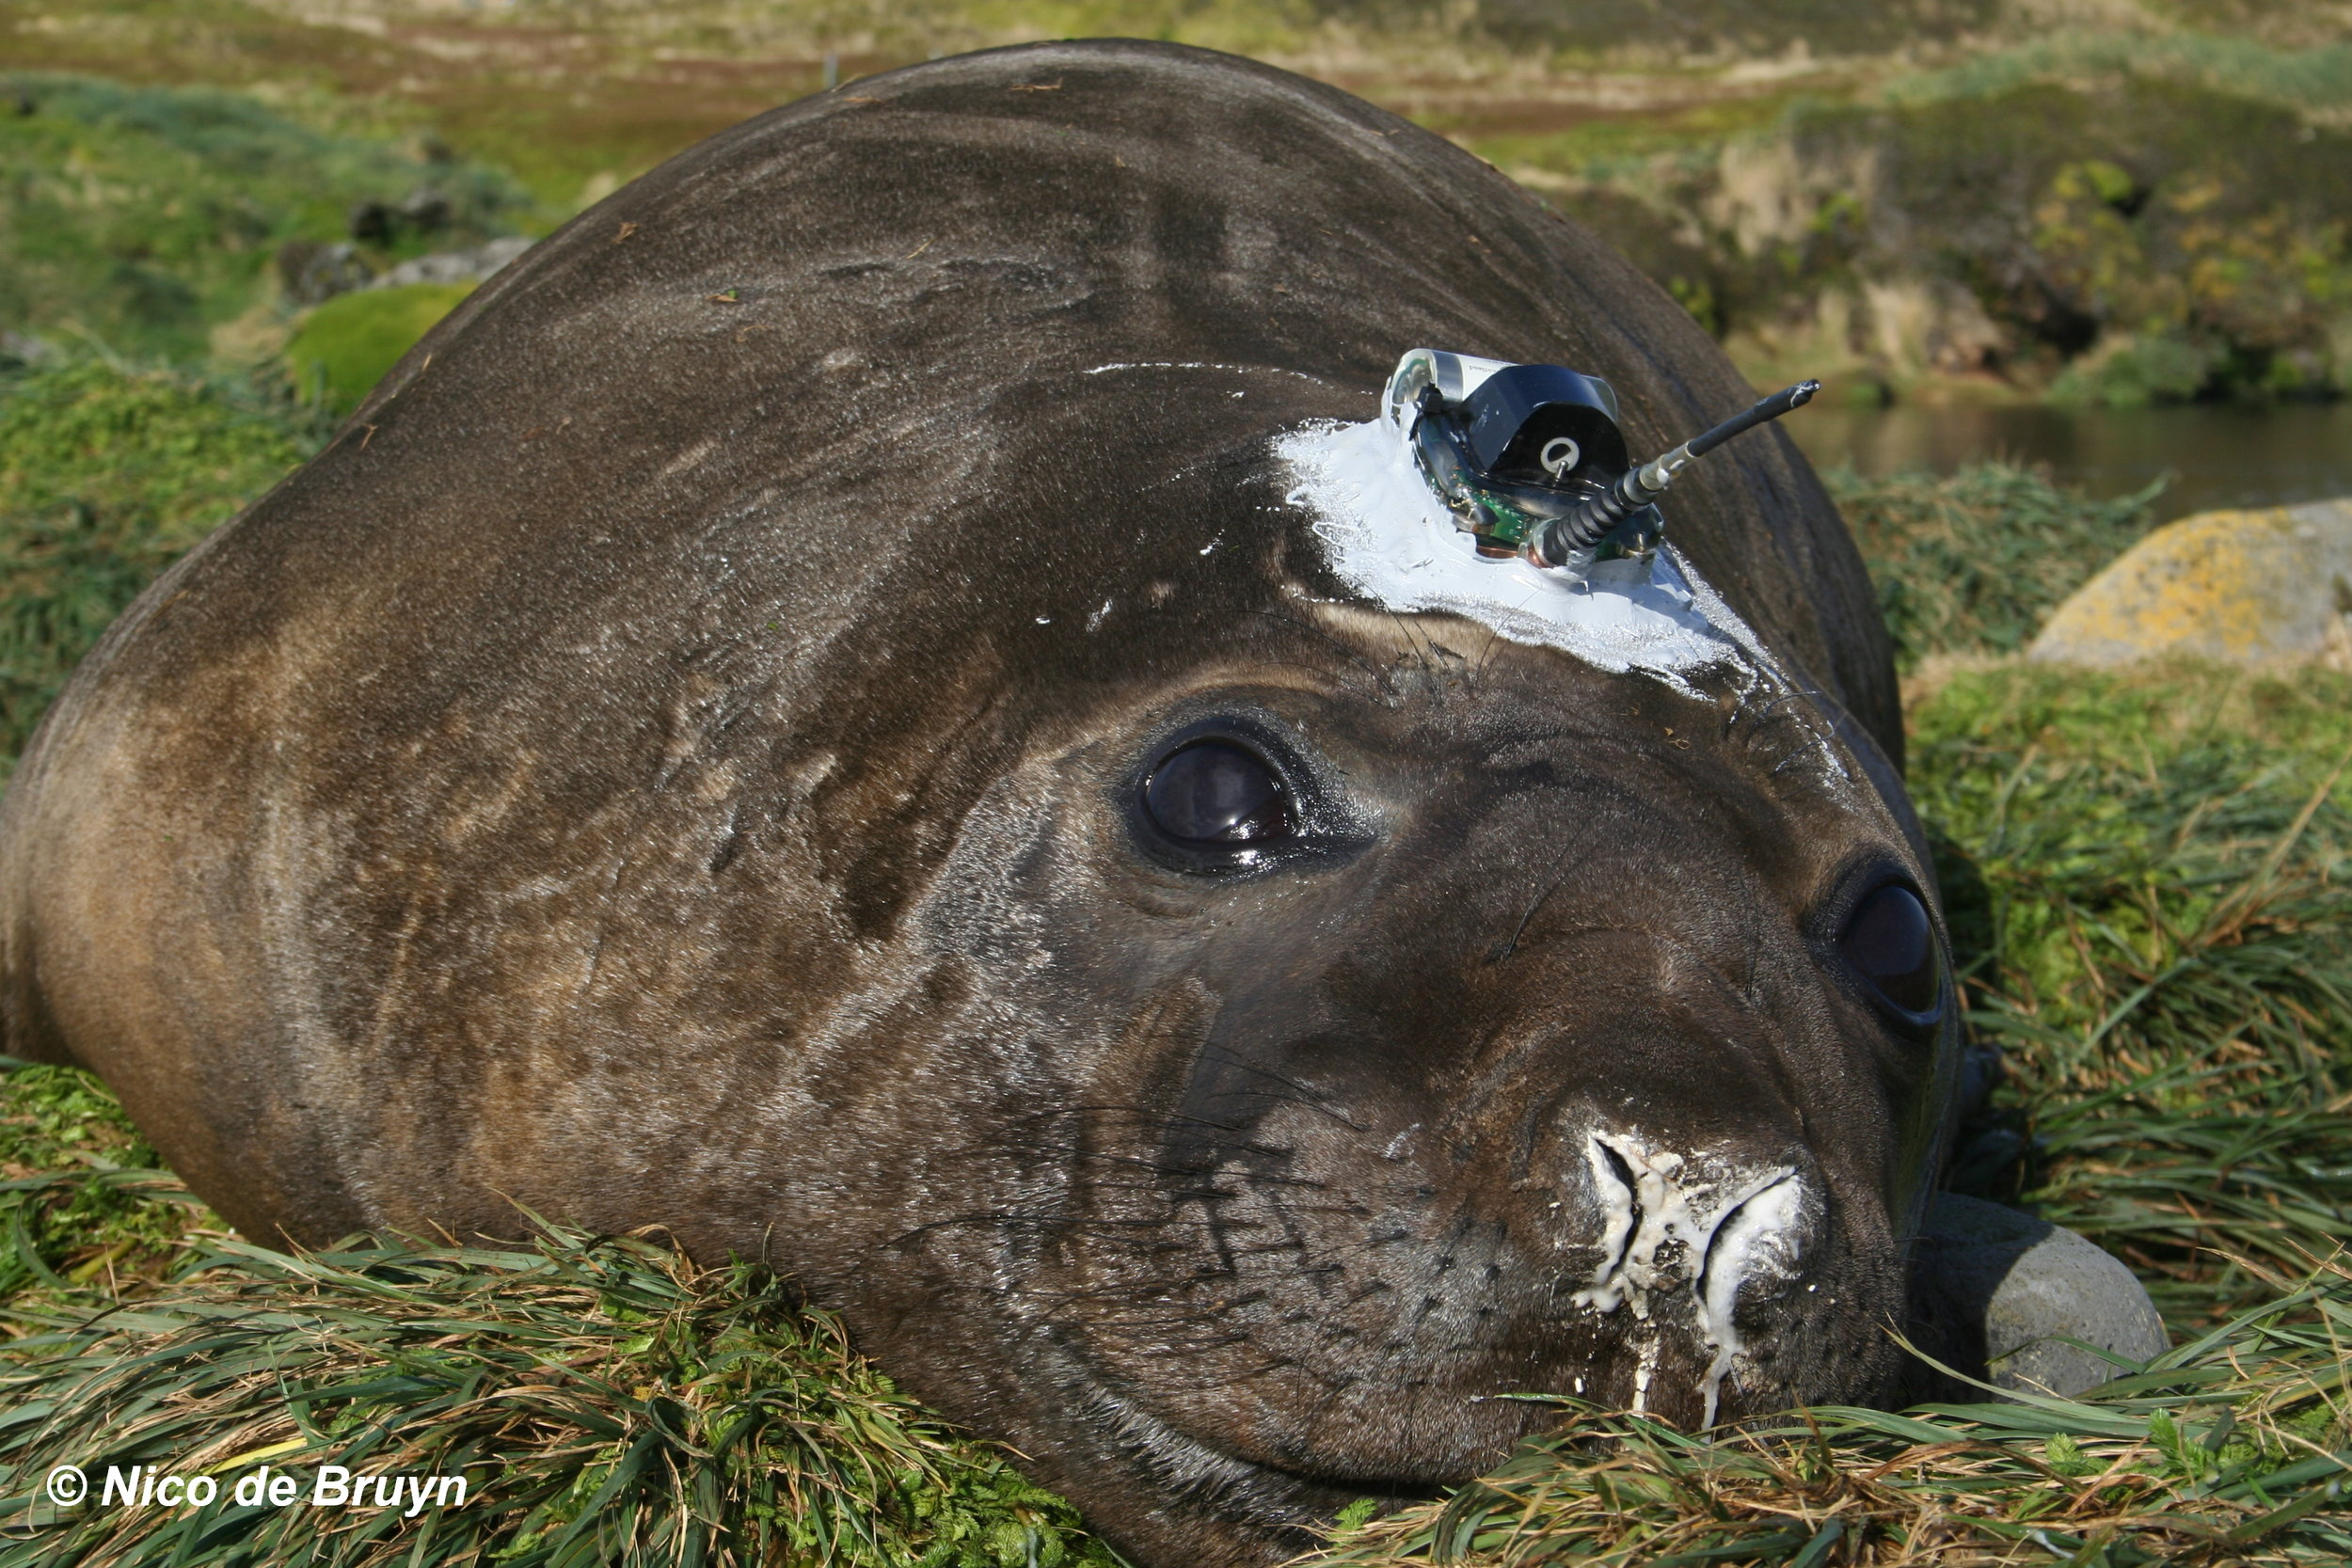 A young male southern elephant seal sporting a  SMRU tracking device . Photo: Nico de Bruyn